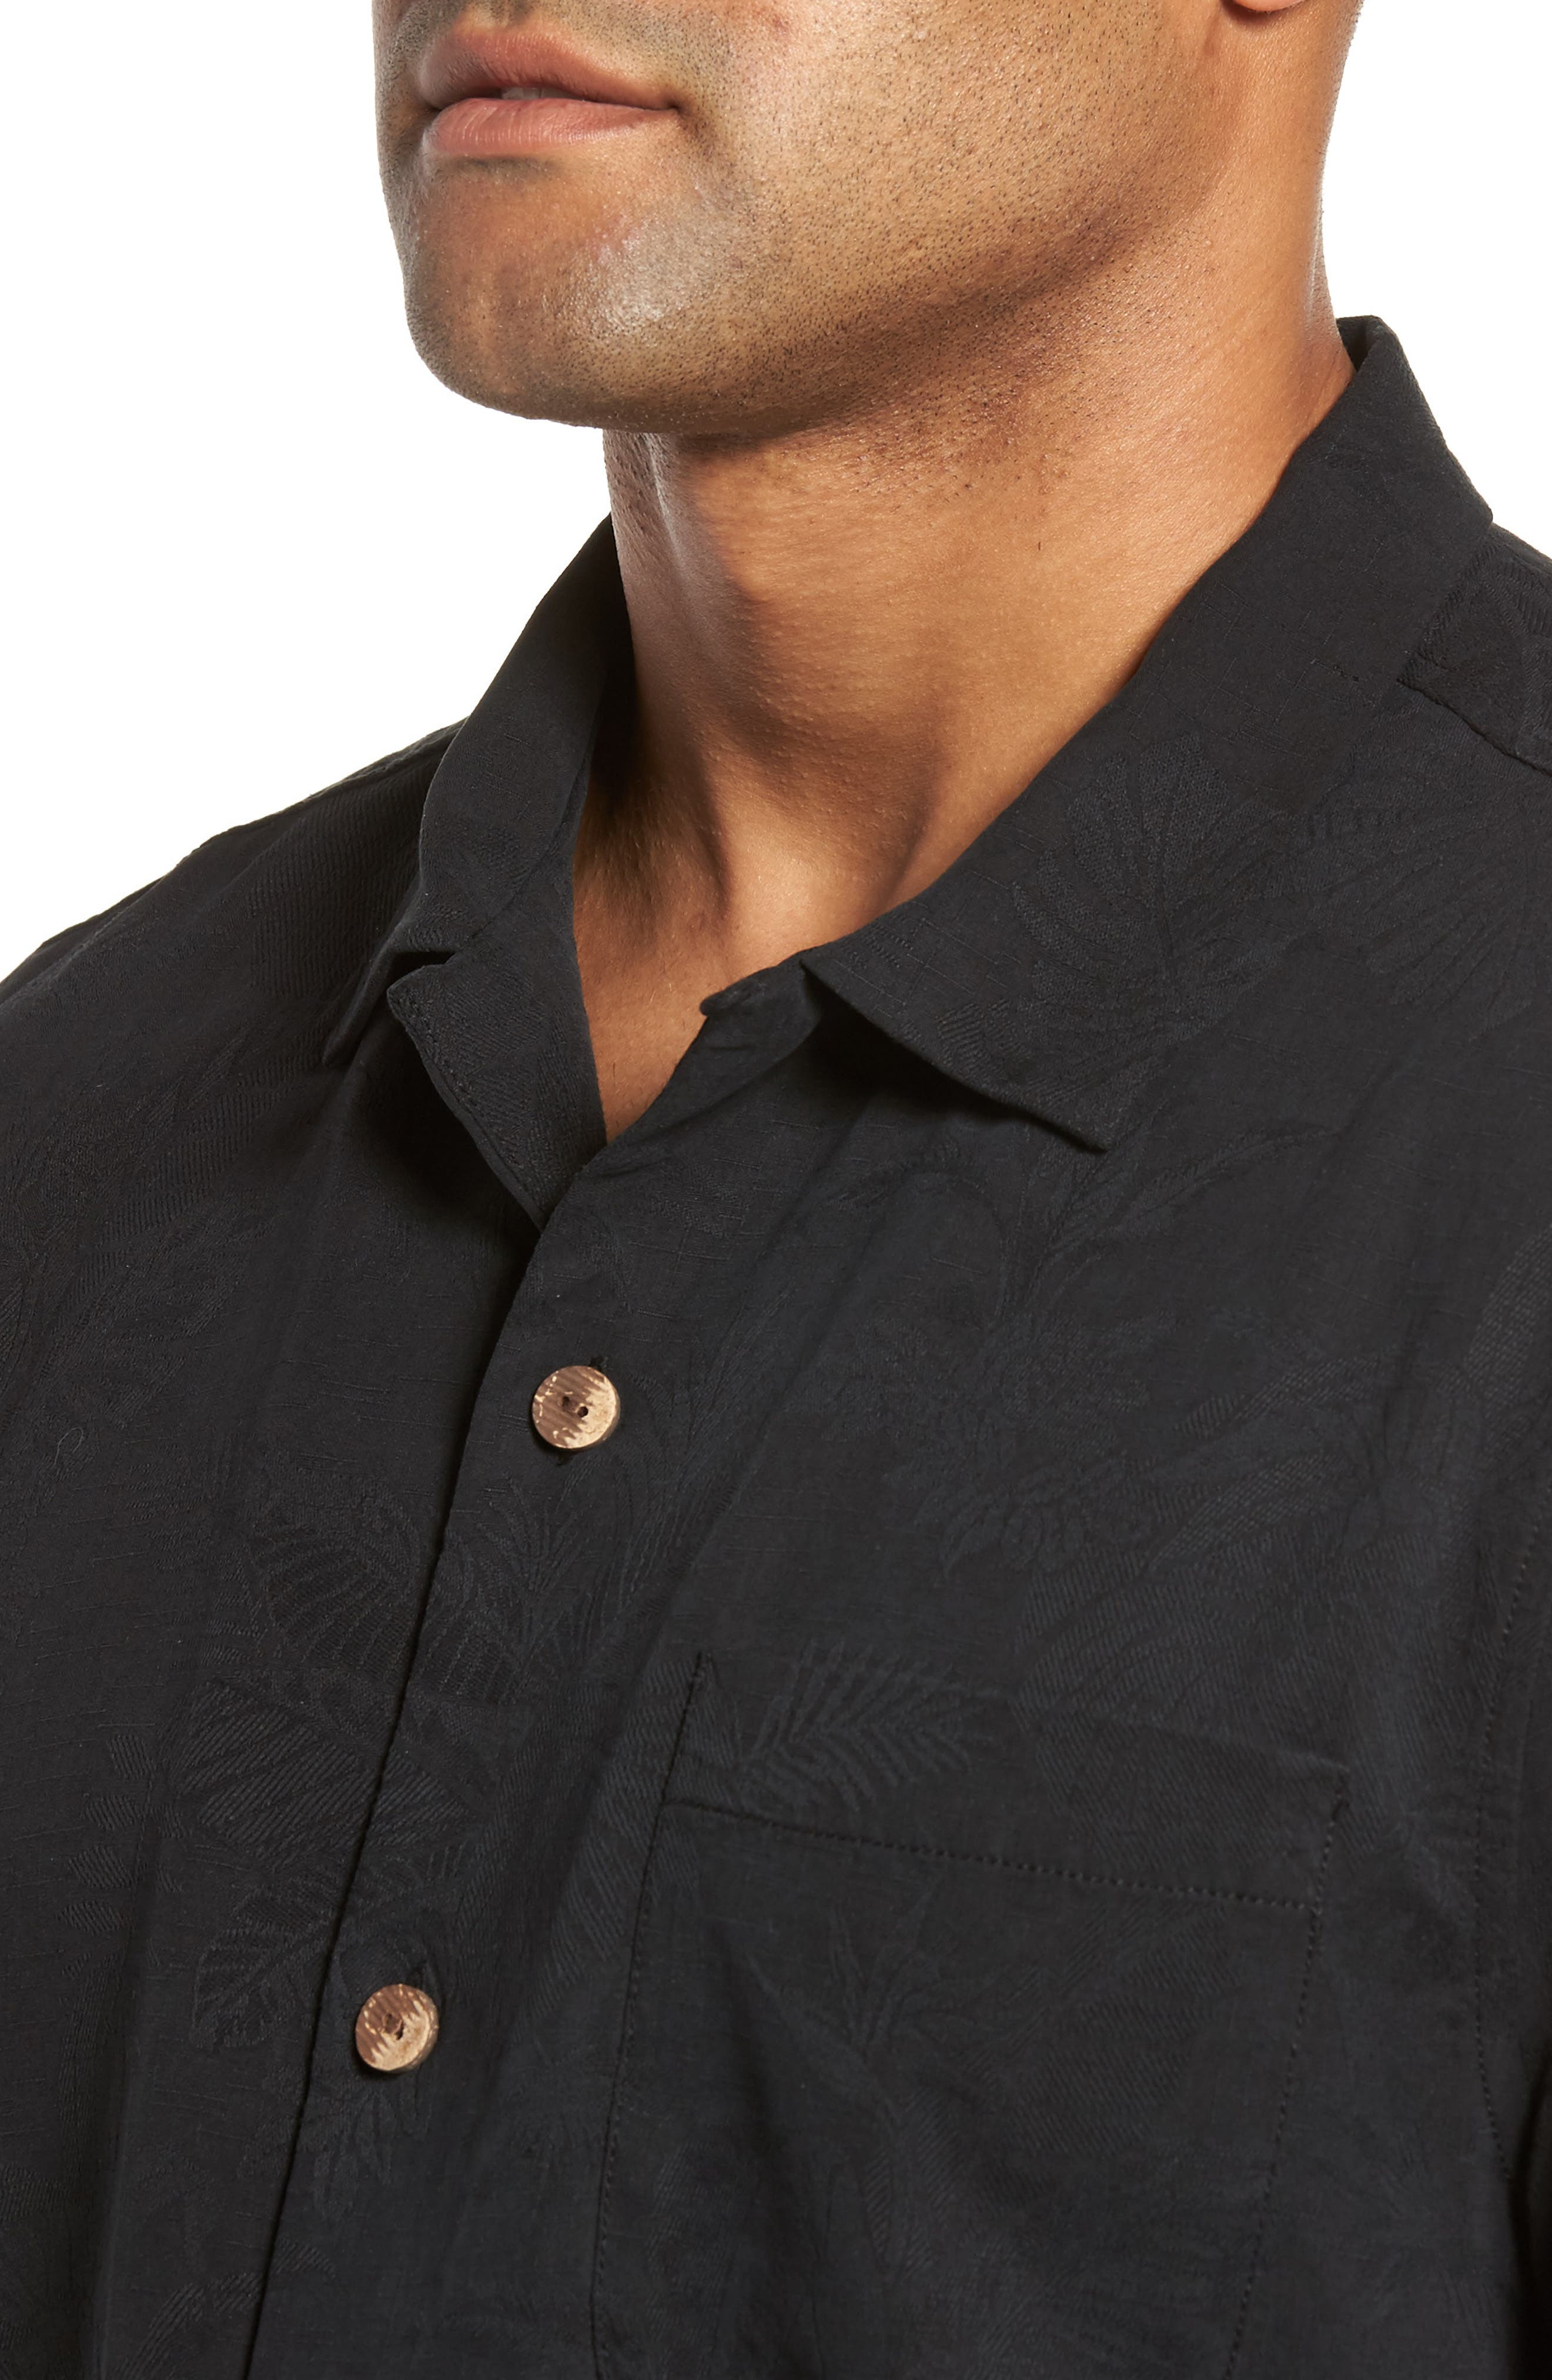 St Lucia Fronds Silk Camp Shirt,                             Alternate thumbnail 4, color,                             Black